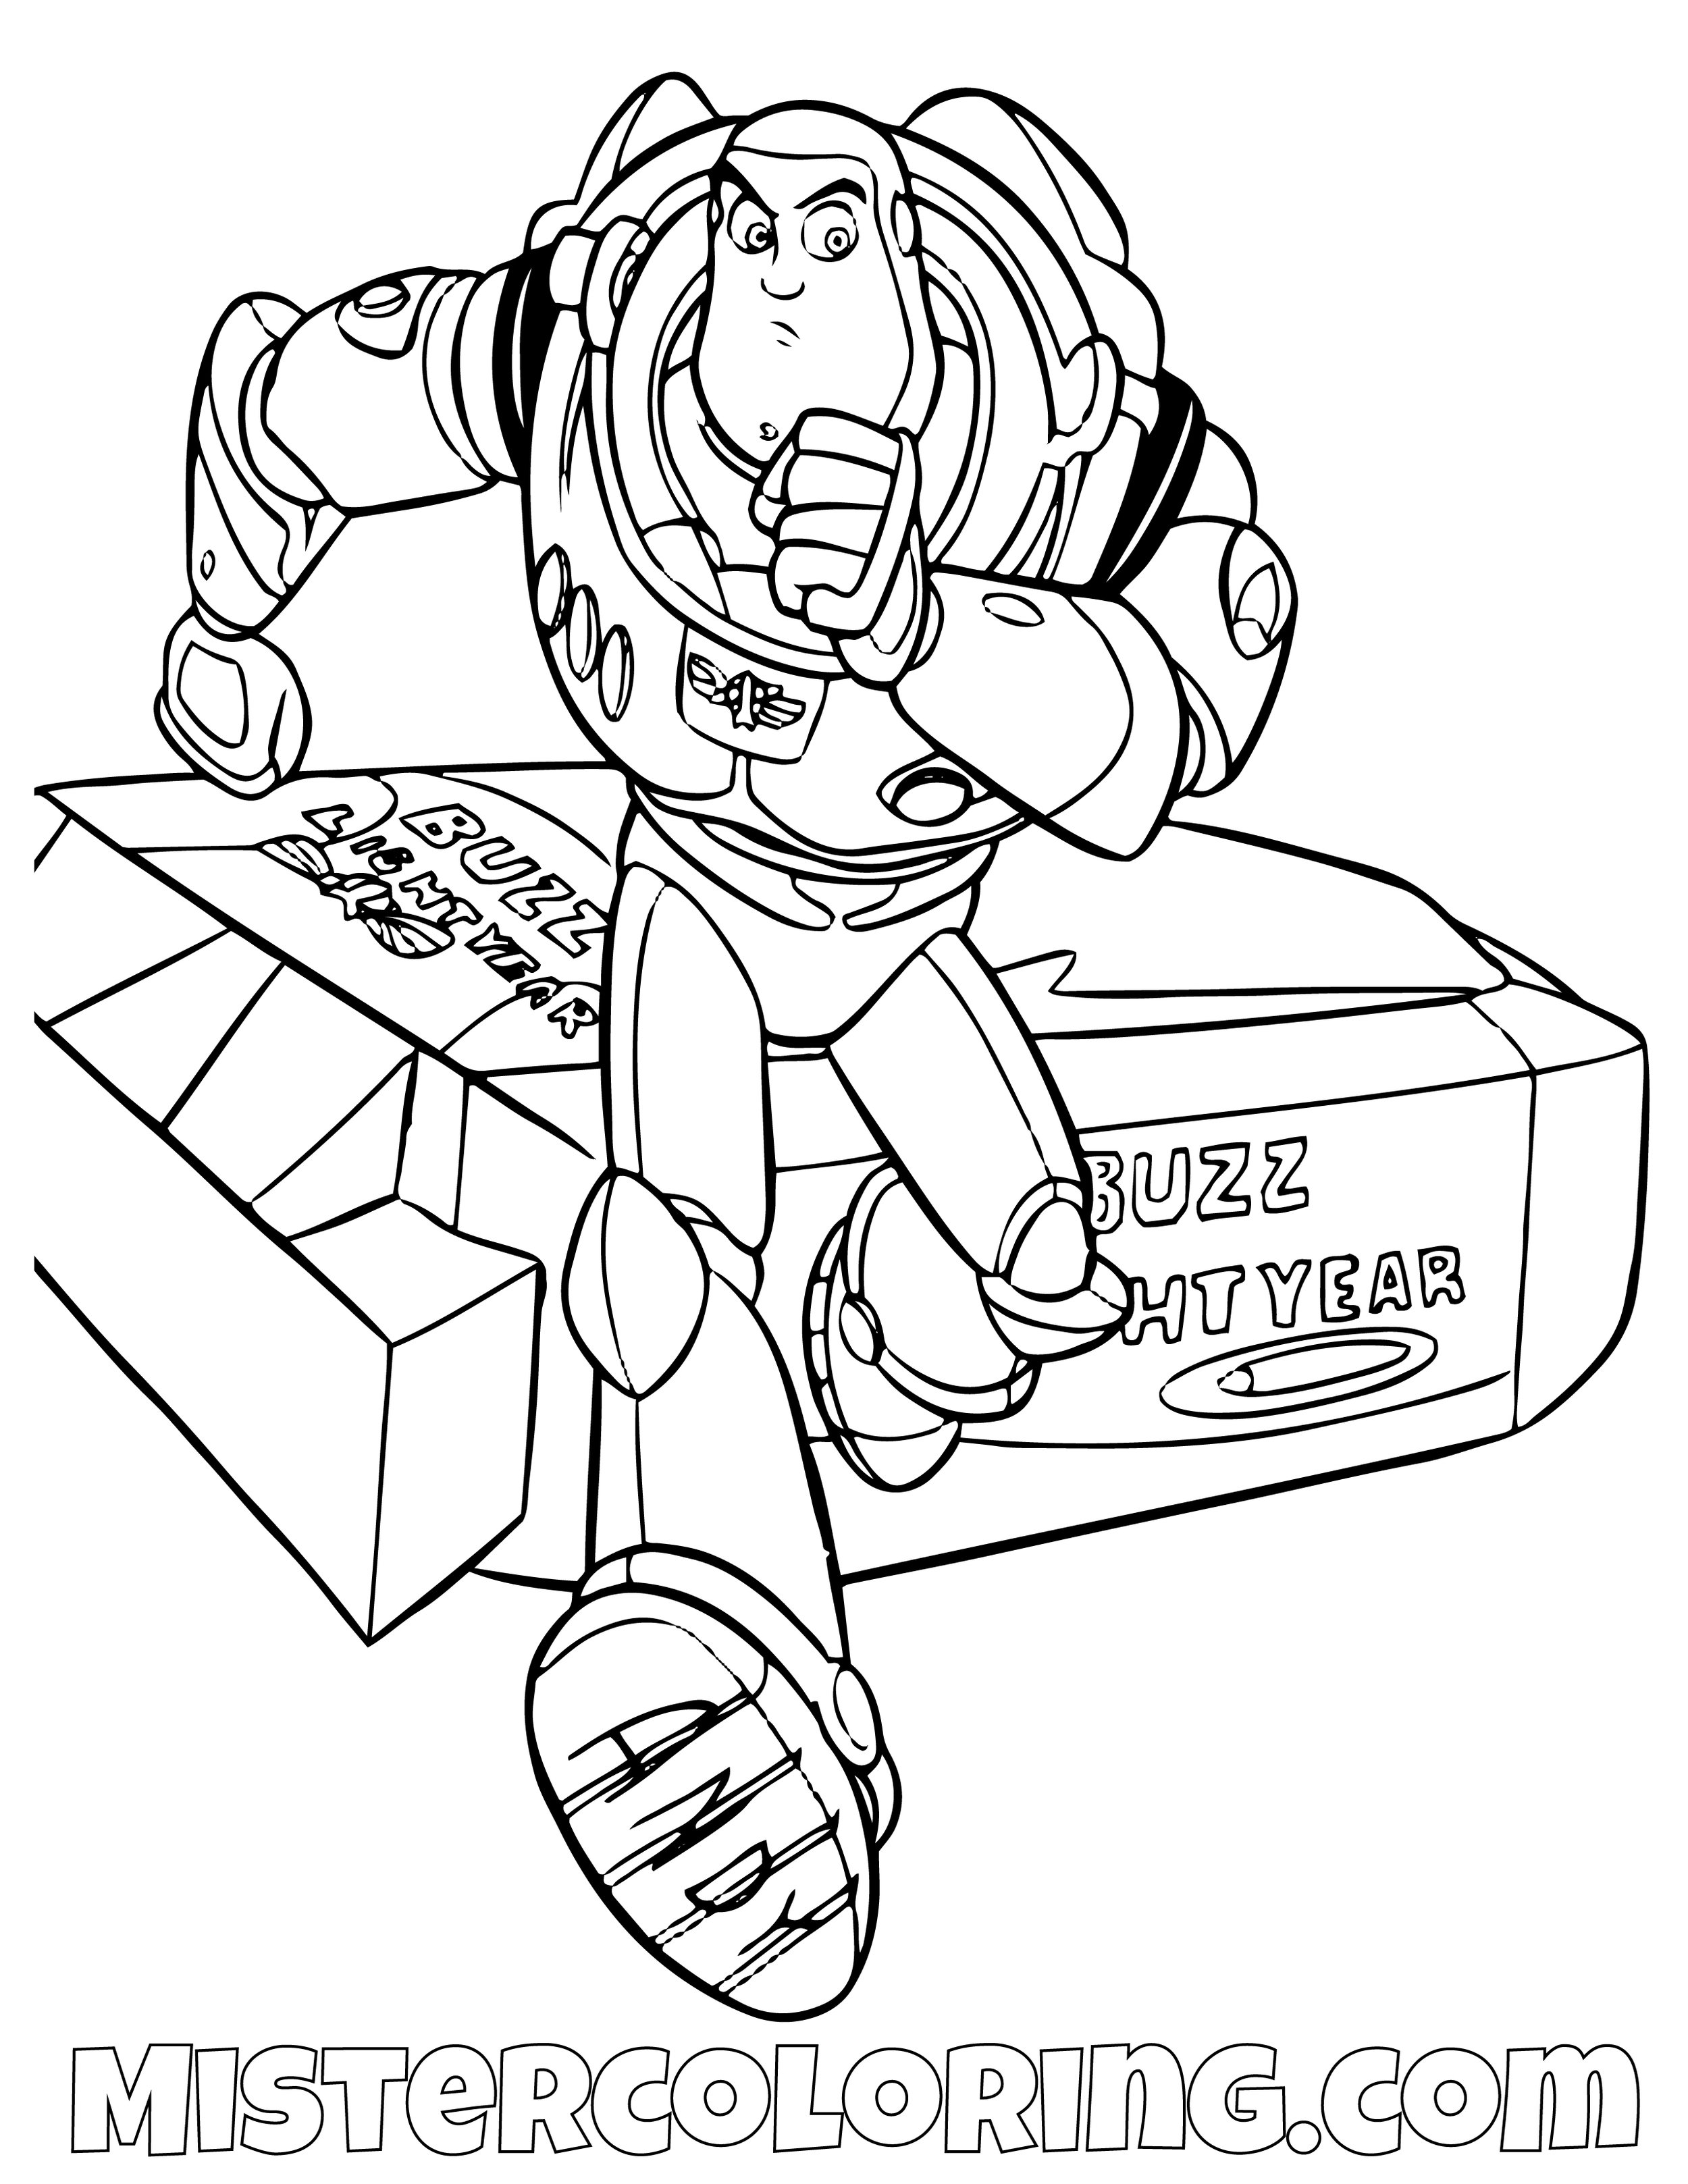 Buzz Lightyear Escaping His Box Toy Story Coloring Page